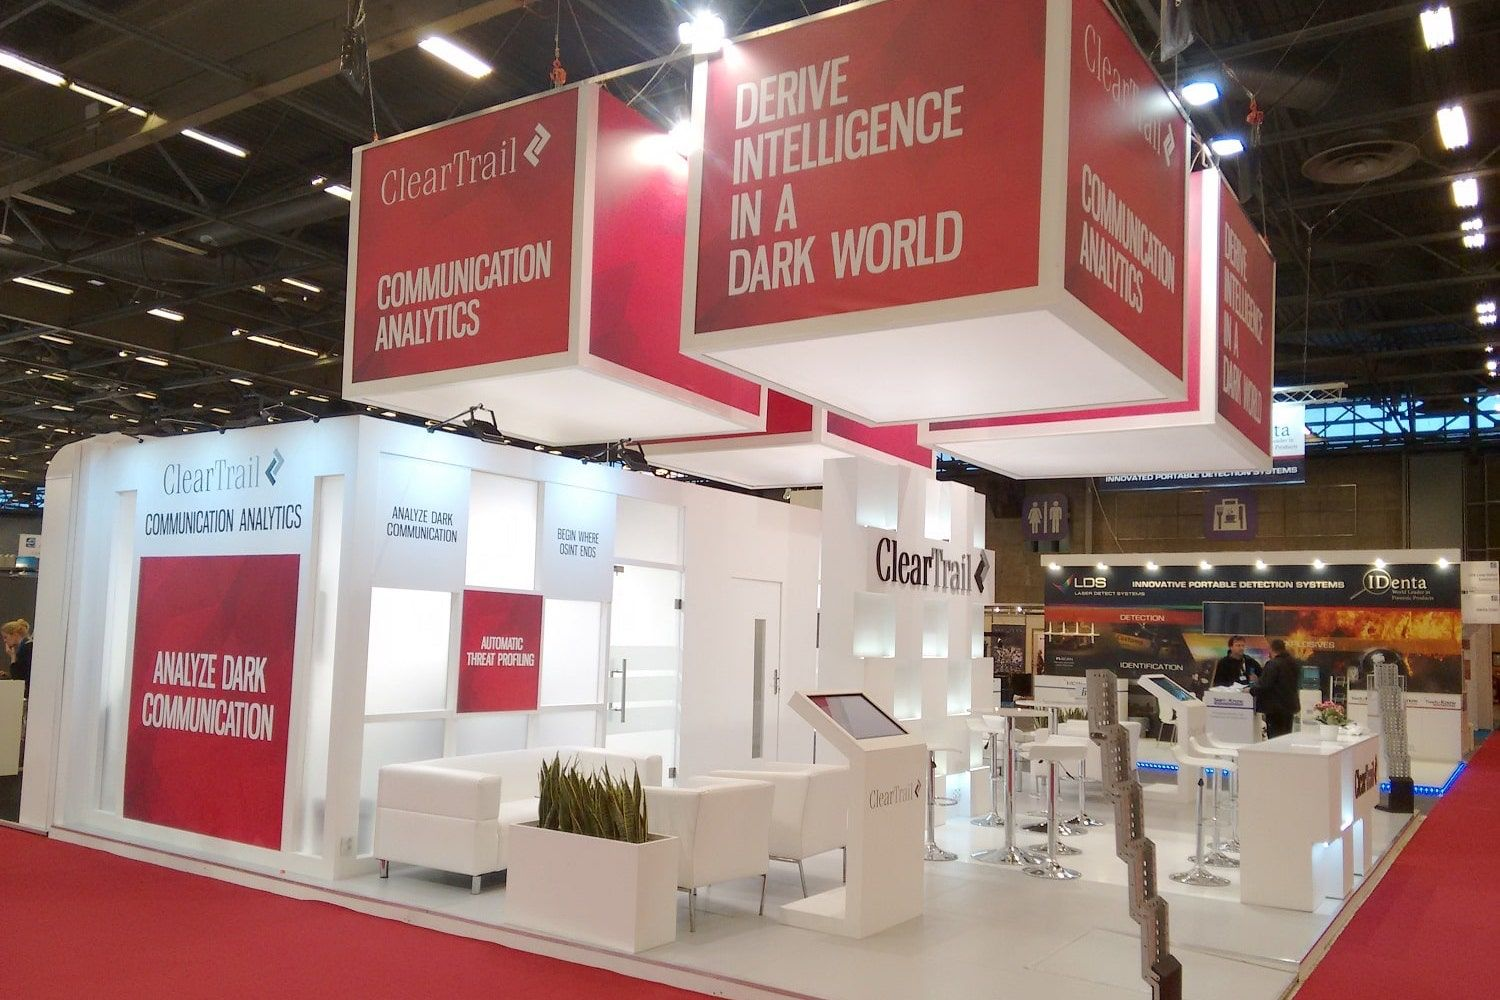 K Show 2019 Exhibition At Dusseldorf Germany Exhibition Stand